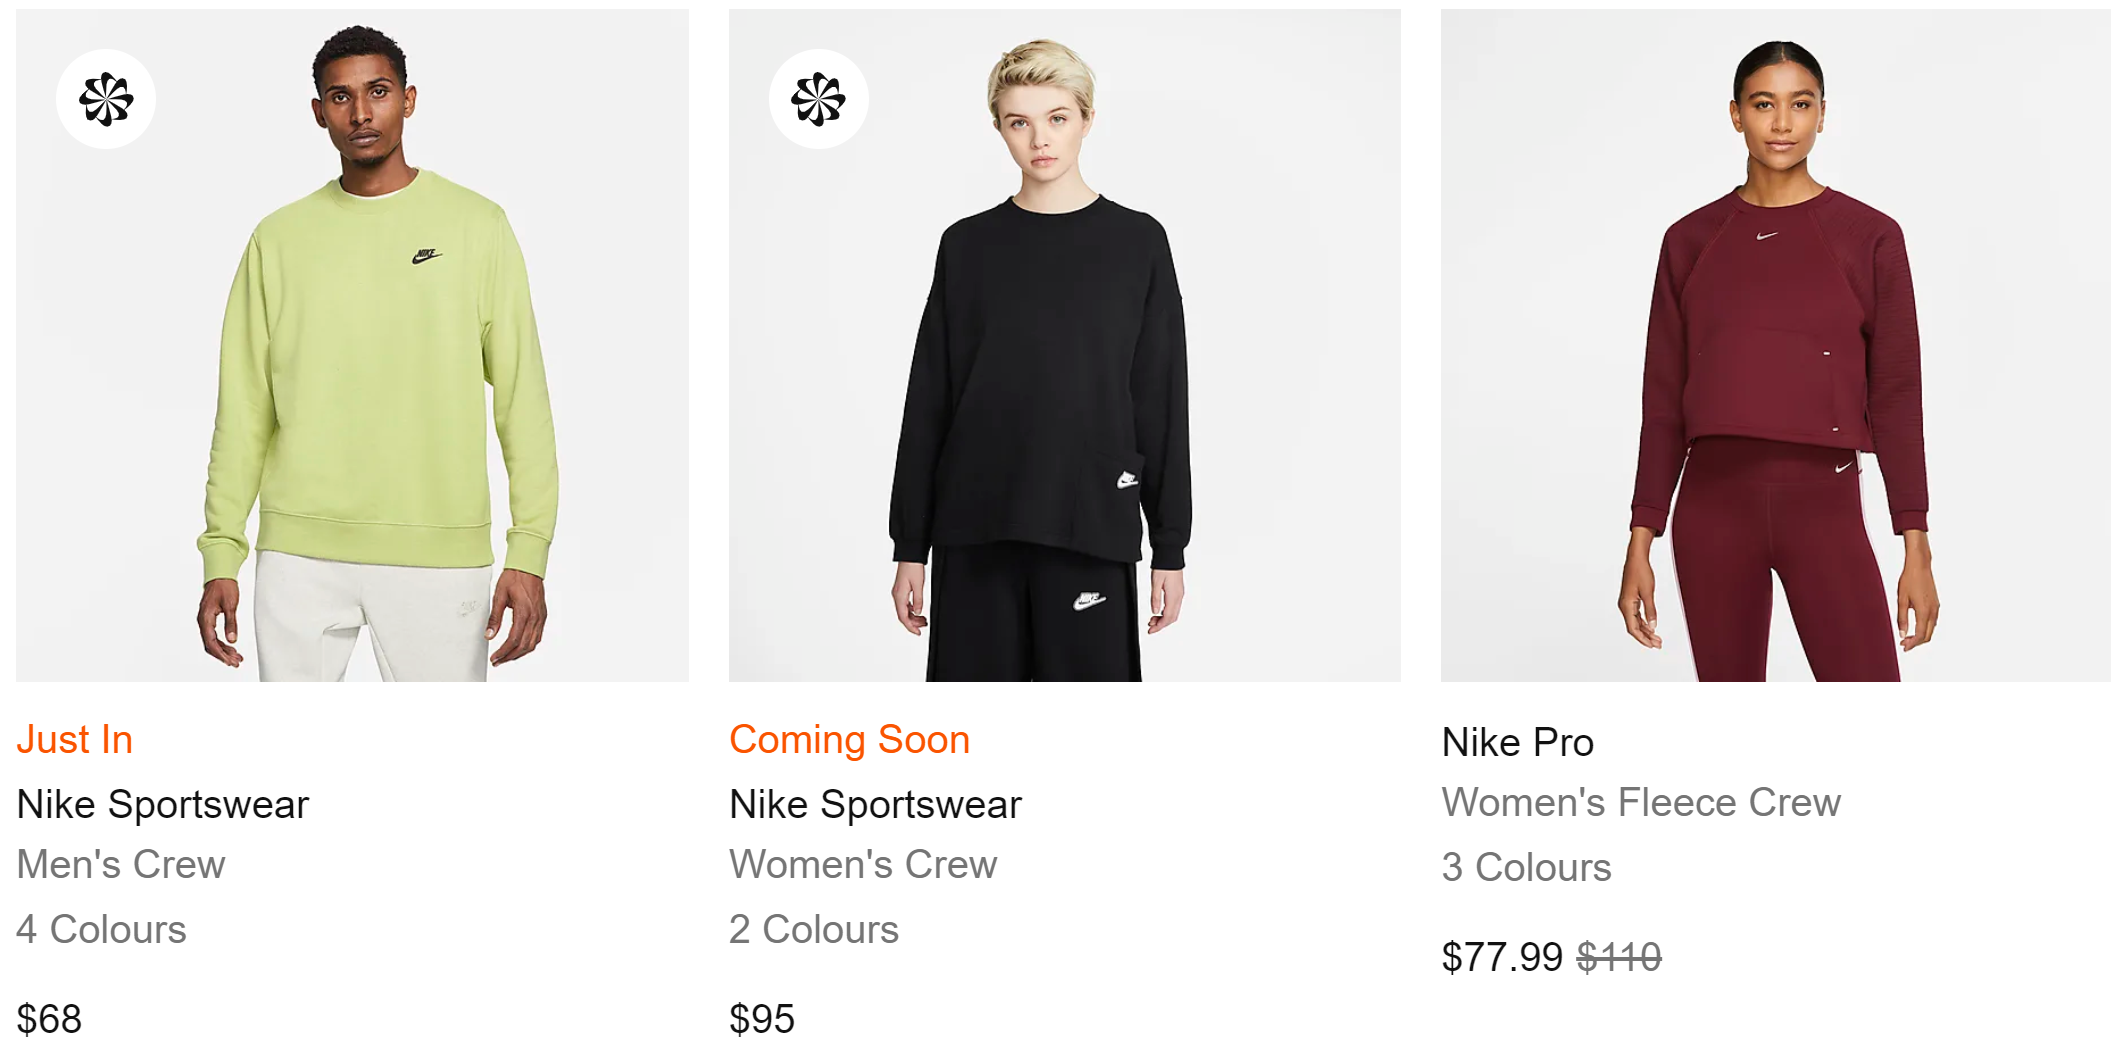 nike-hoodies-as-low-as-30-off-its-stylish-2021-1-16